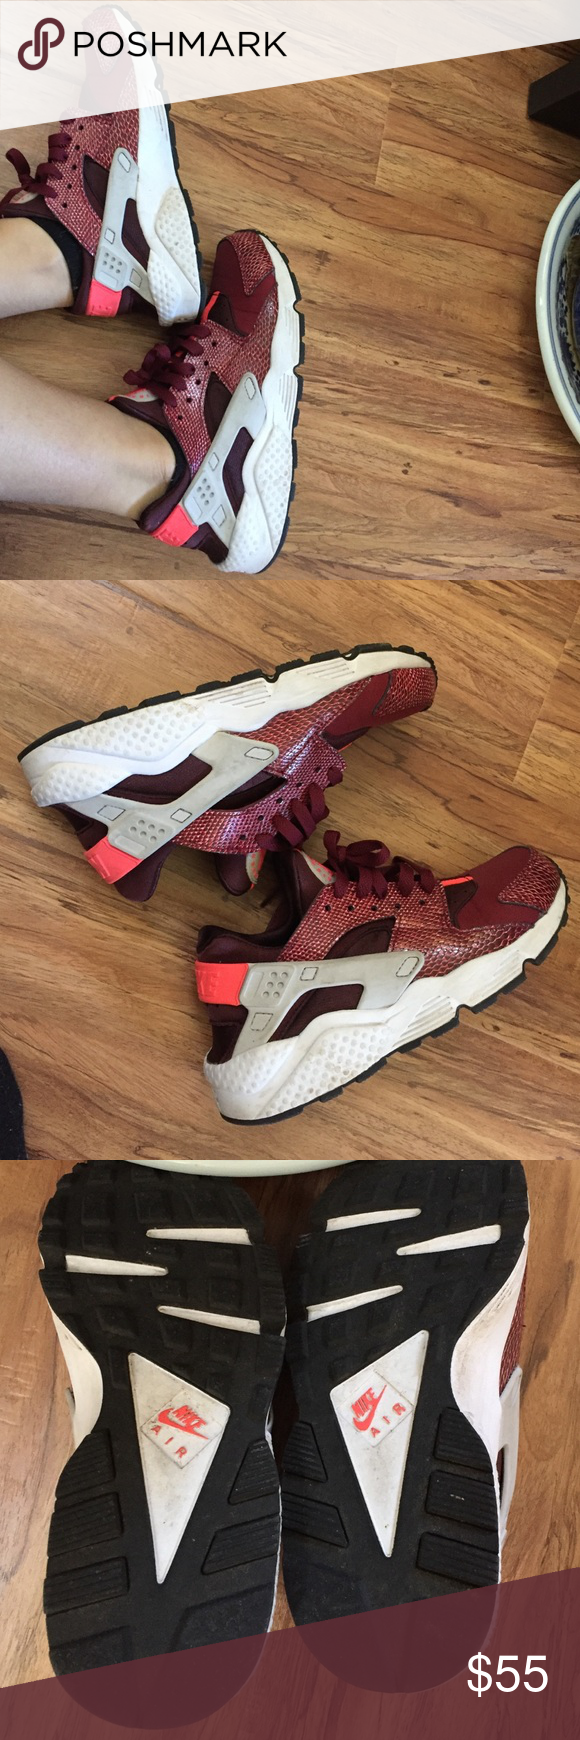 check out a3db8 a4339 ... Nike Air Huarache Red Lizard online retailer 6a246 4947b Just needs to  be cleaned a little, well taken care of ...